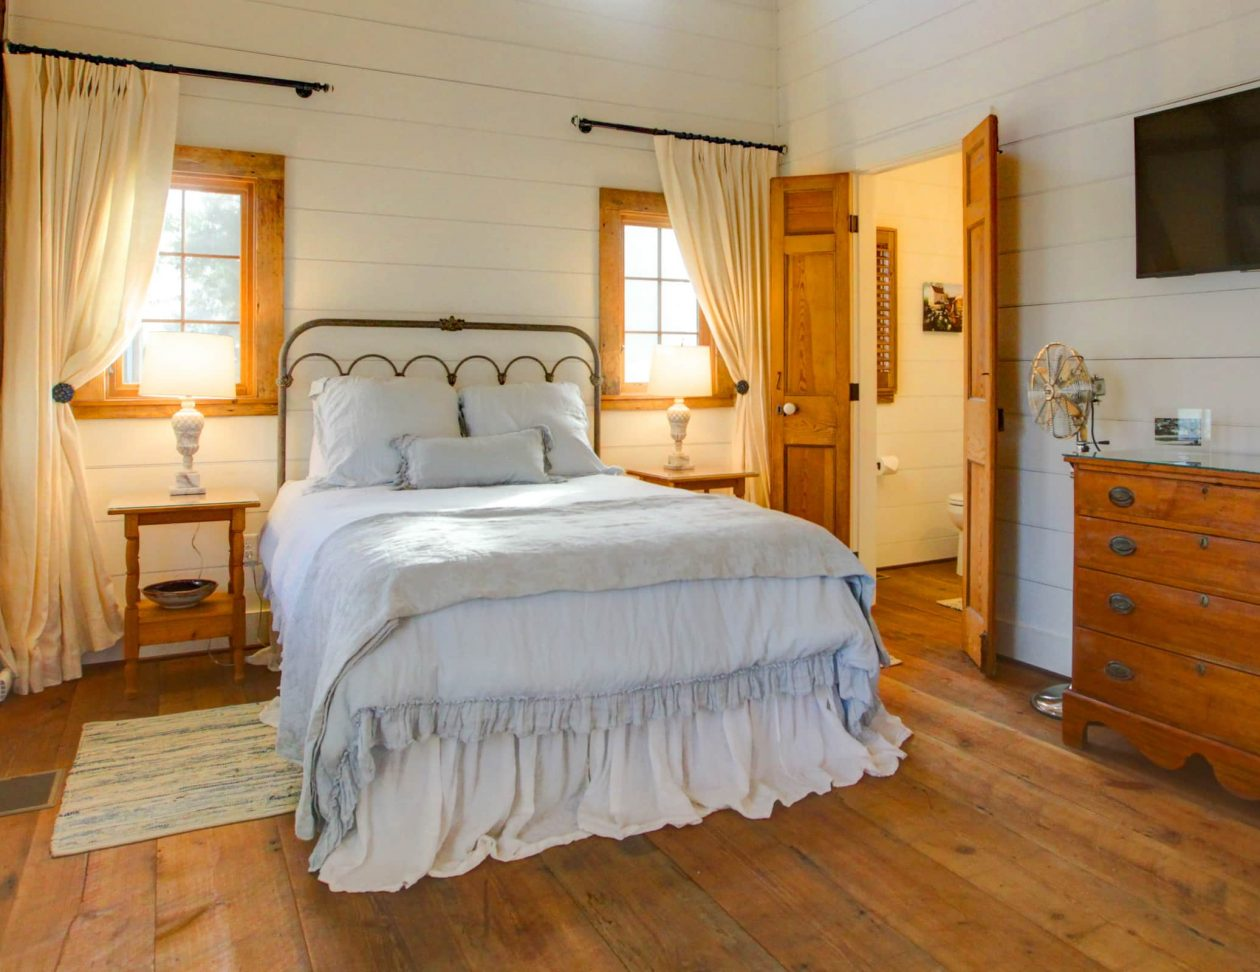 Beautiful room at a Shenandoah Valley Bed and Breakfast - bed, tv, dresser